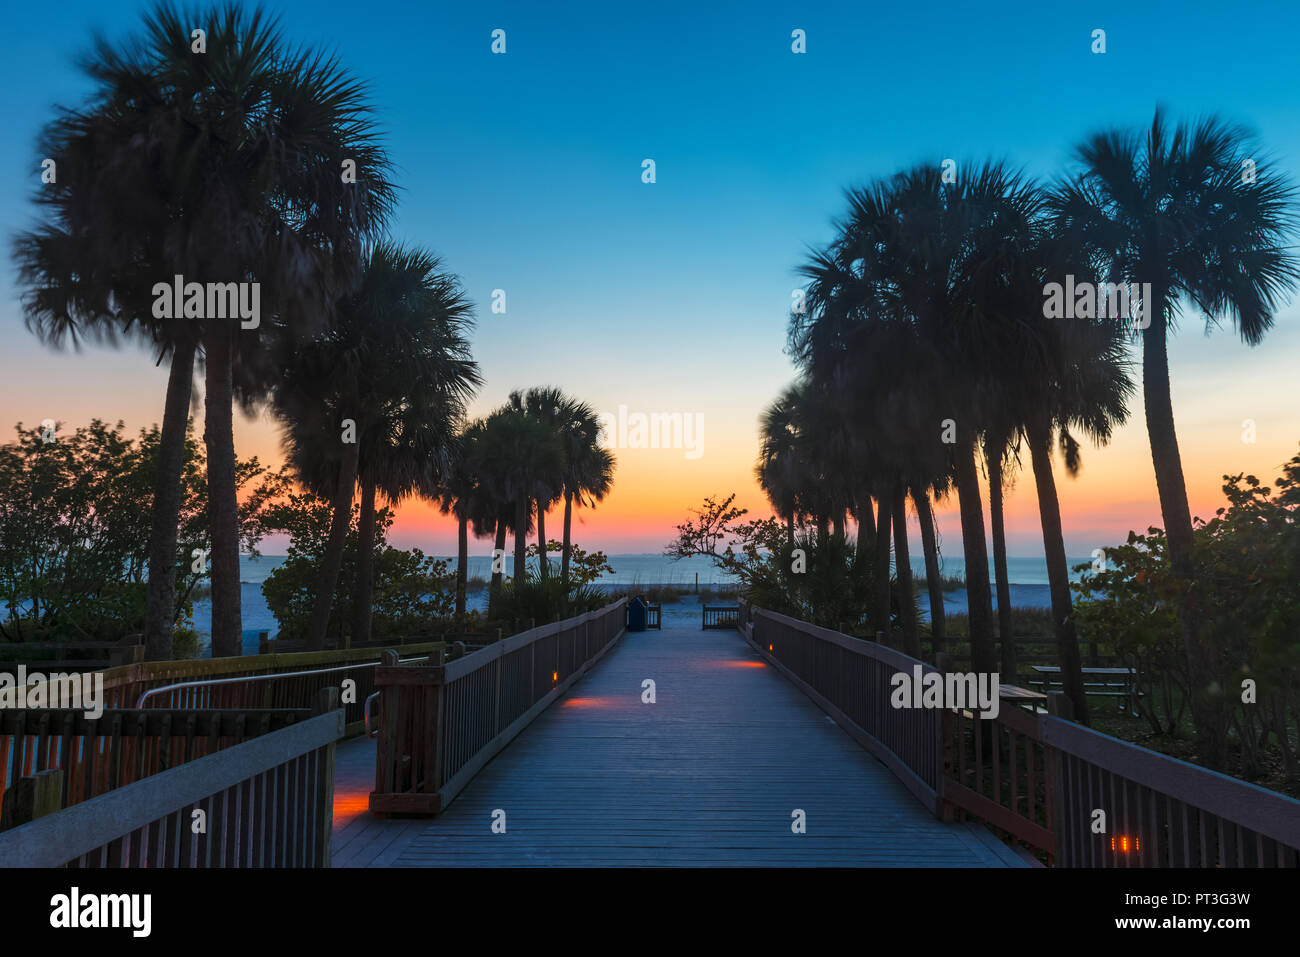 Wooden Boardwalk at Sunset in Fort Myers Beach Florida USA Stock Photo